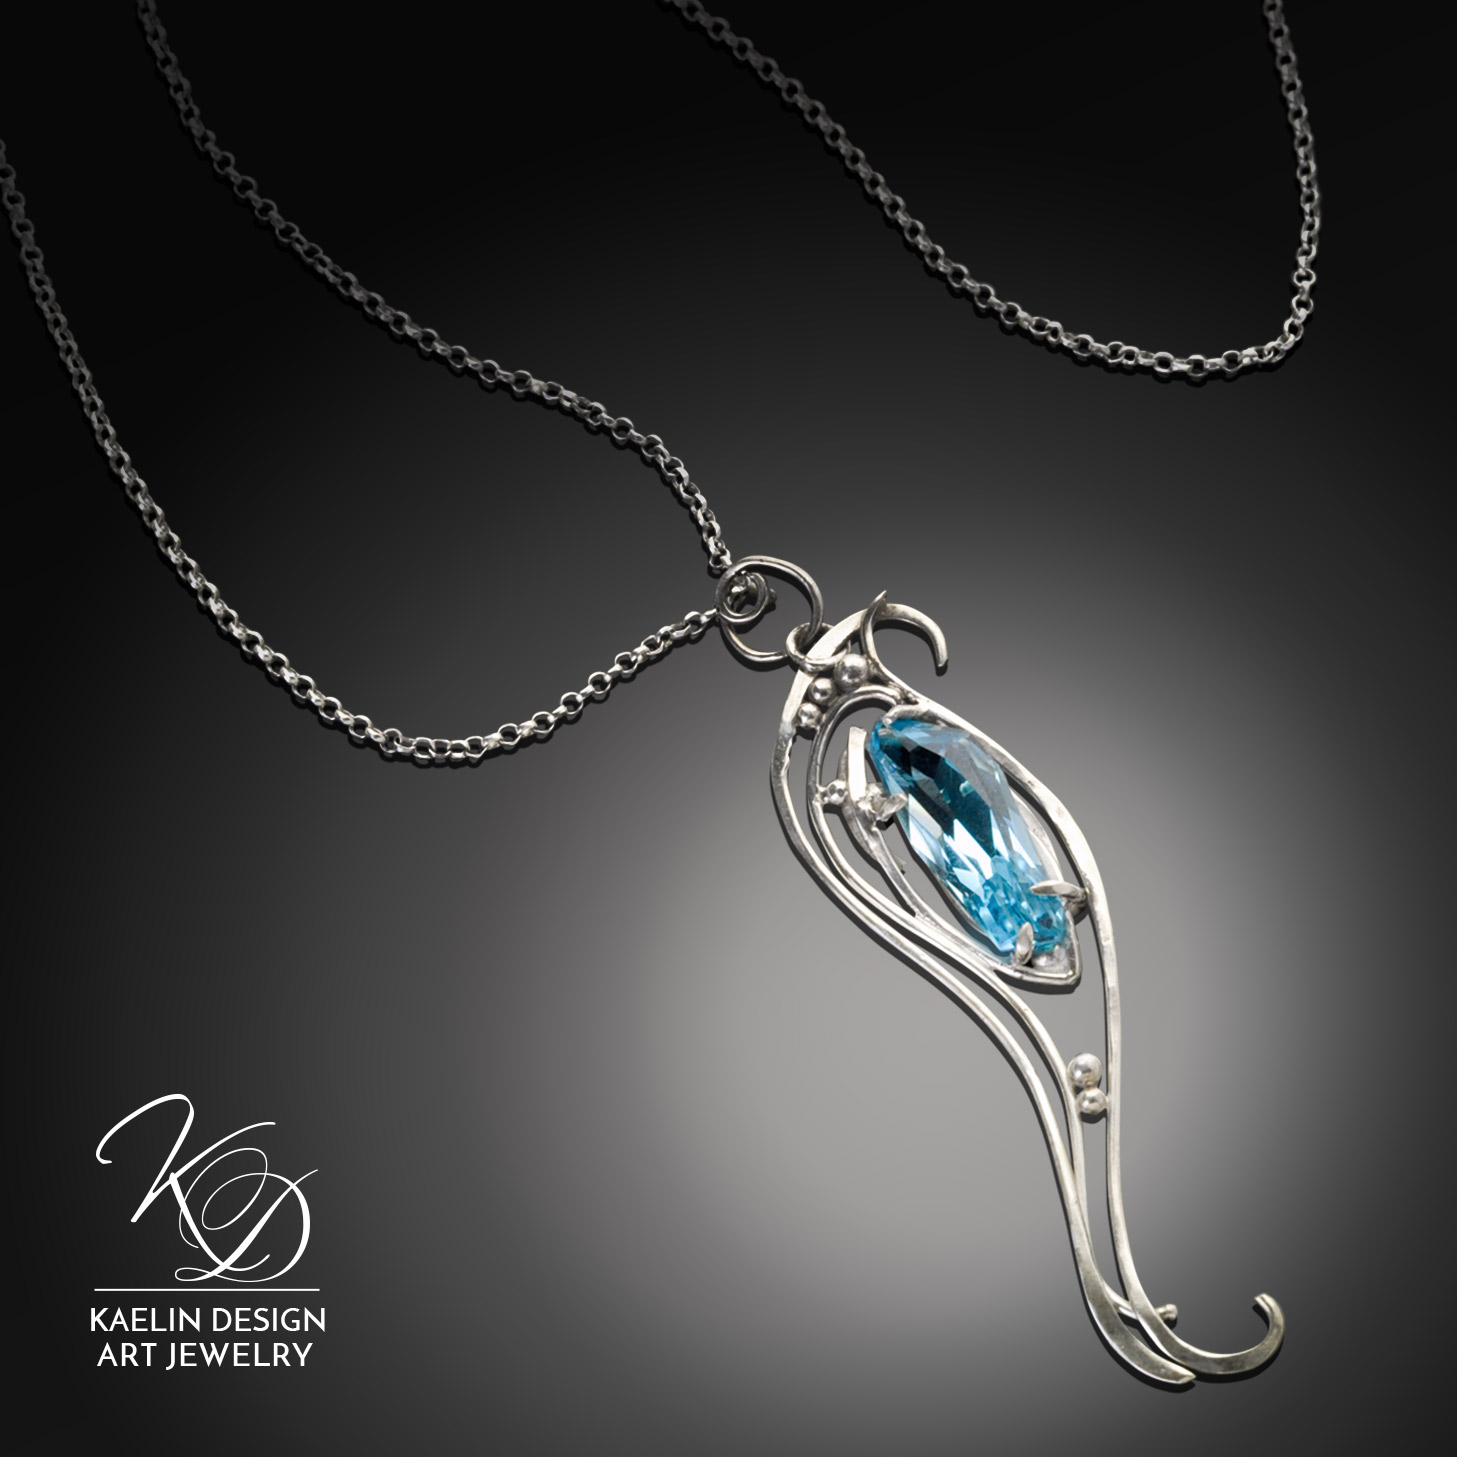 Upon the Waters Blue Topaz Fine Art Jewelry Silver Pendant by Kaelin Design